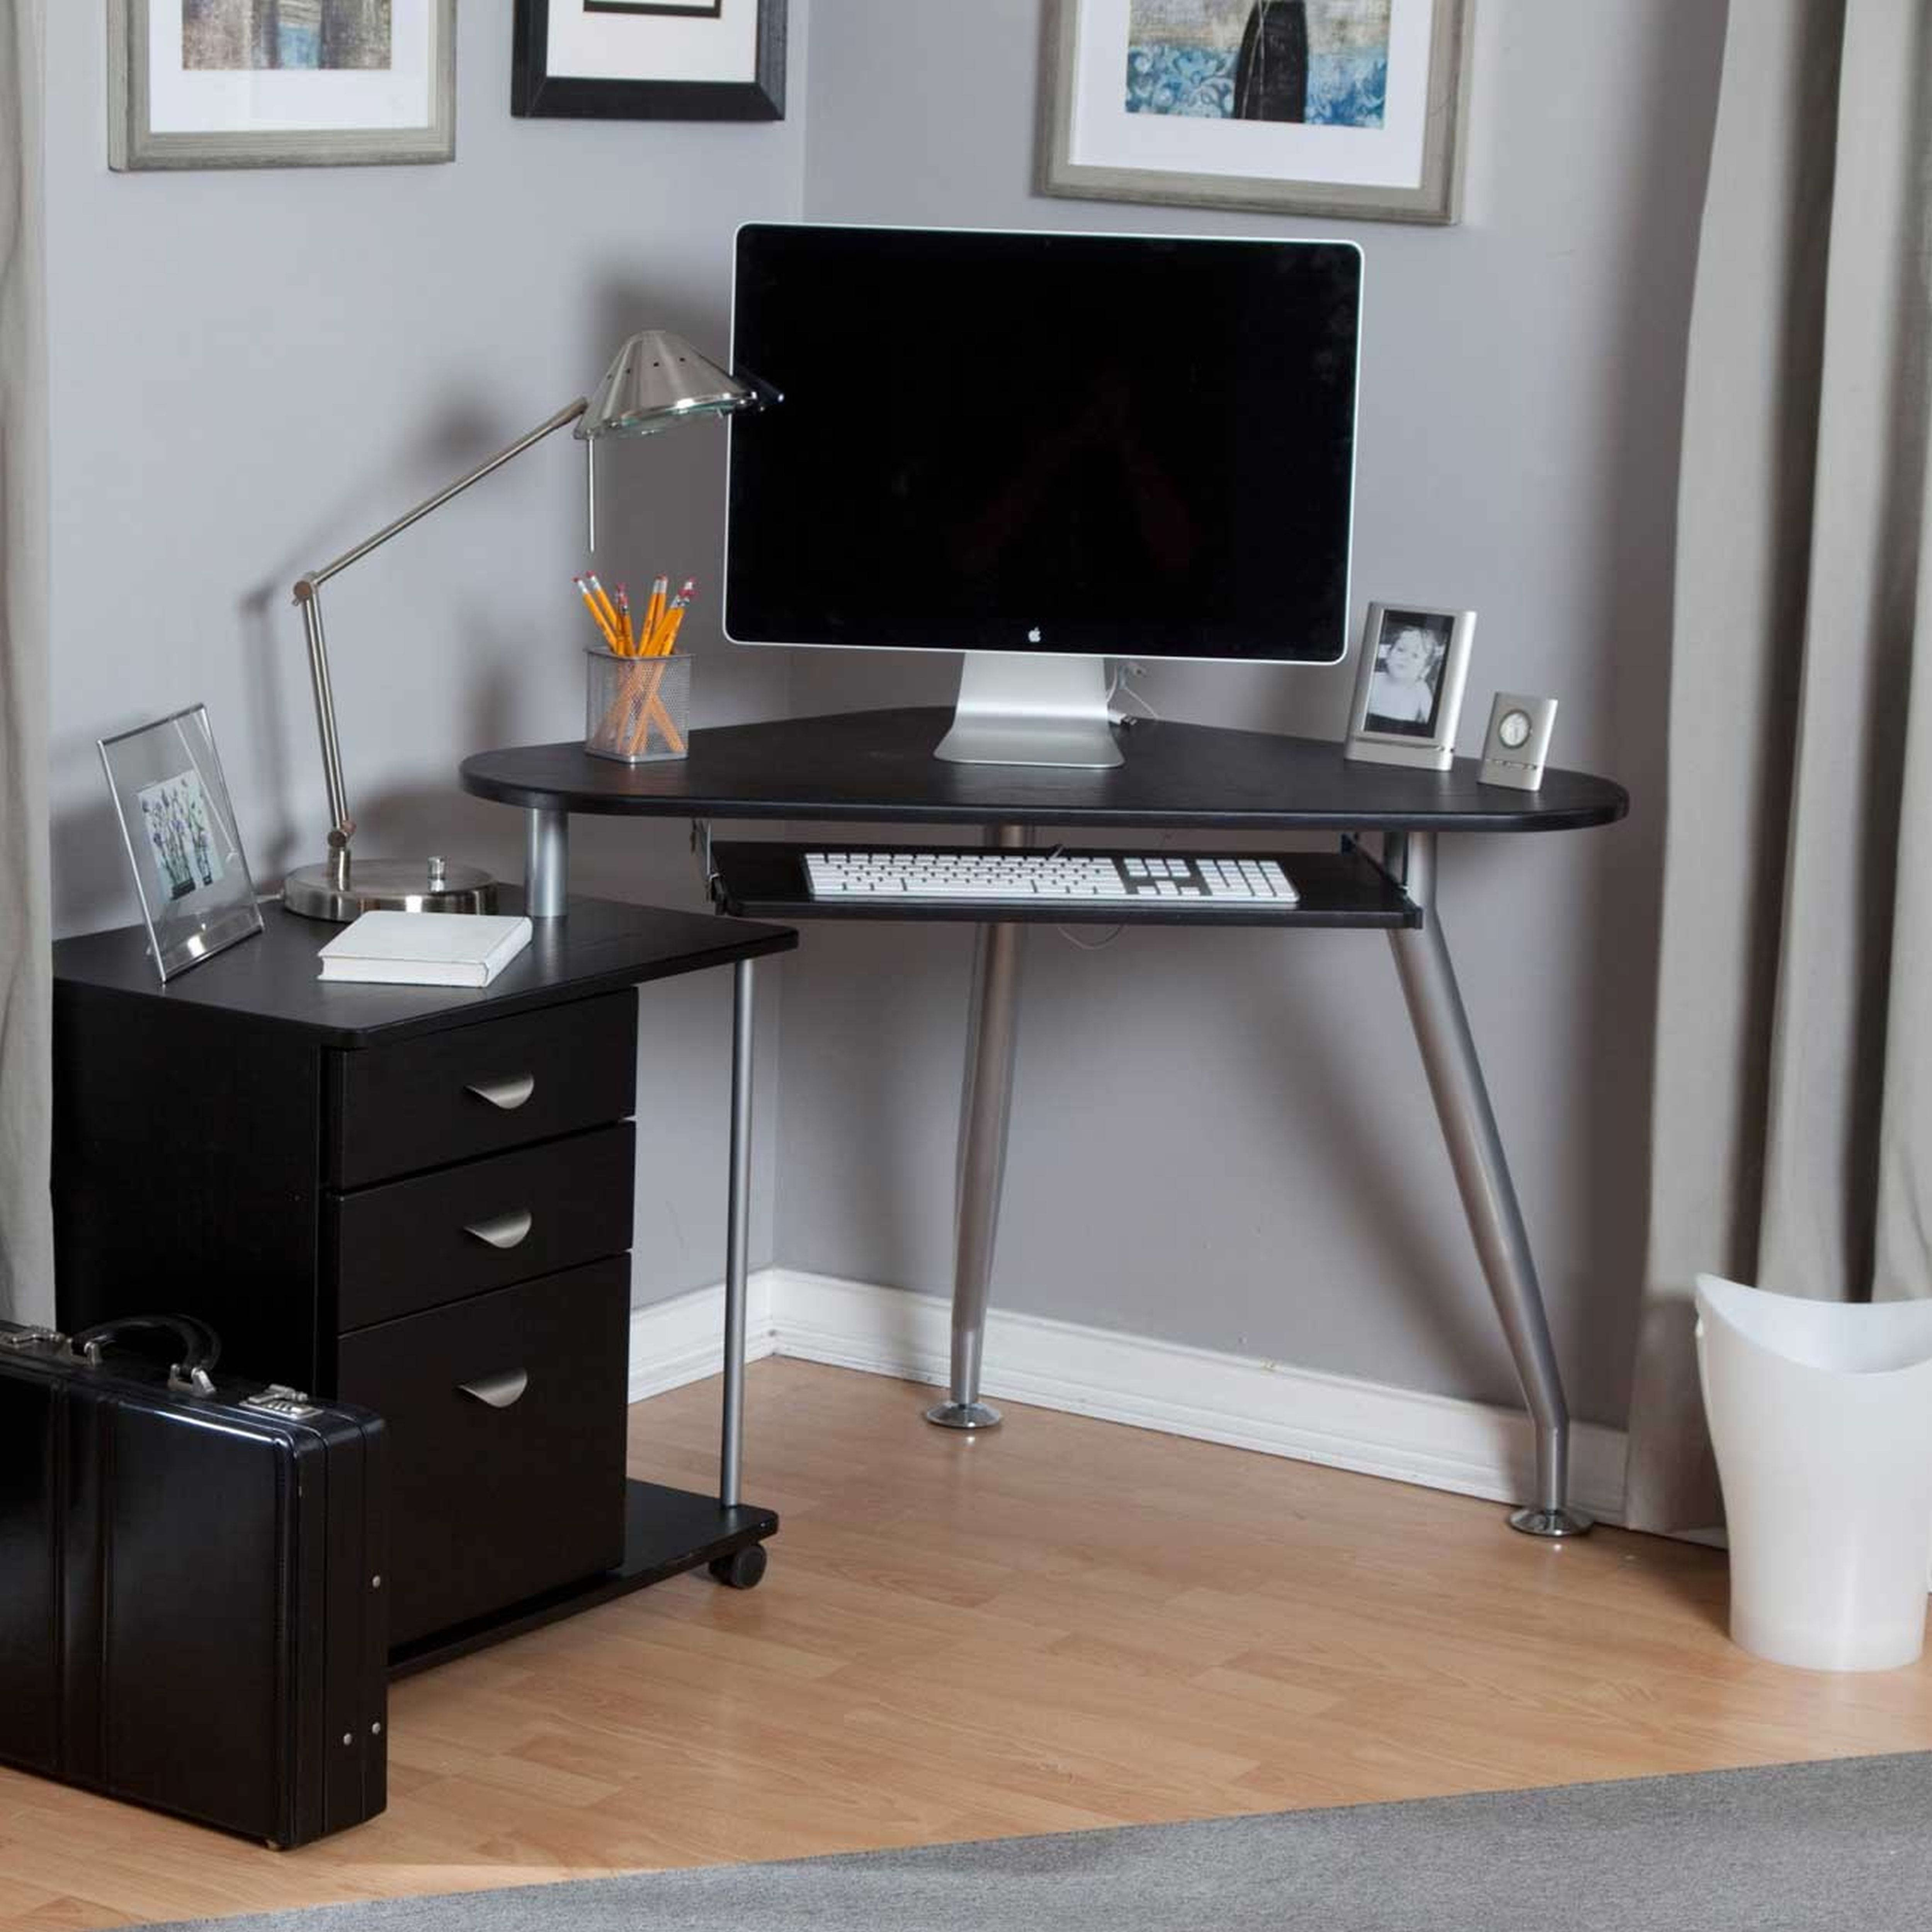 2019 The Corner Computer Desk And Its Important Function Throughout Computer Desks For Bedrooms (View 14 of 20)